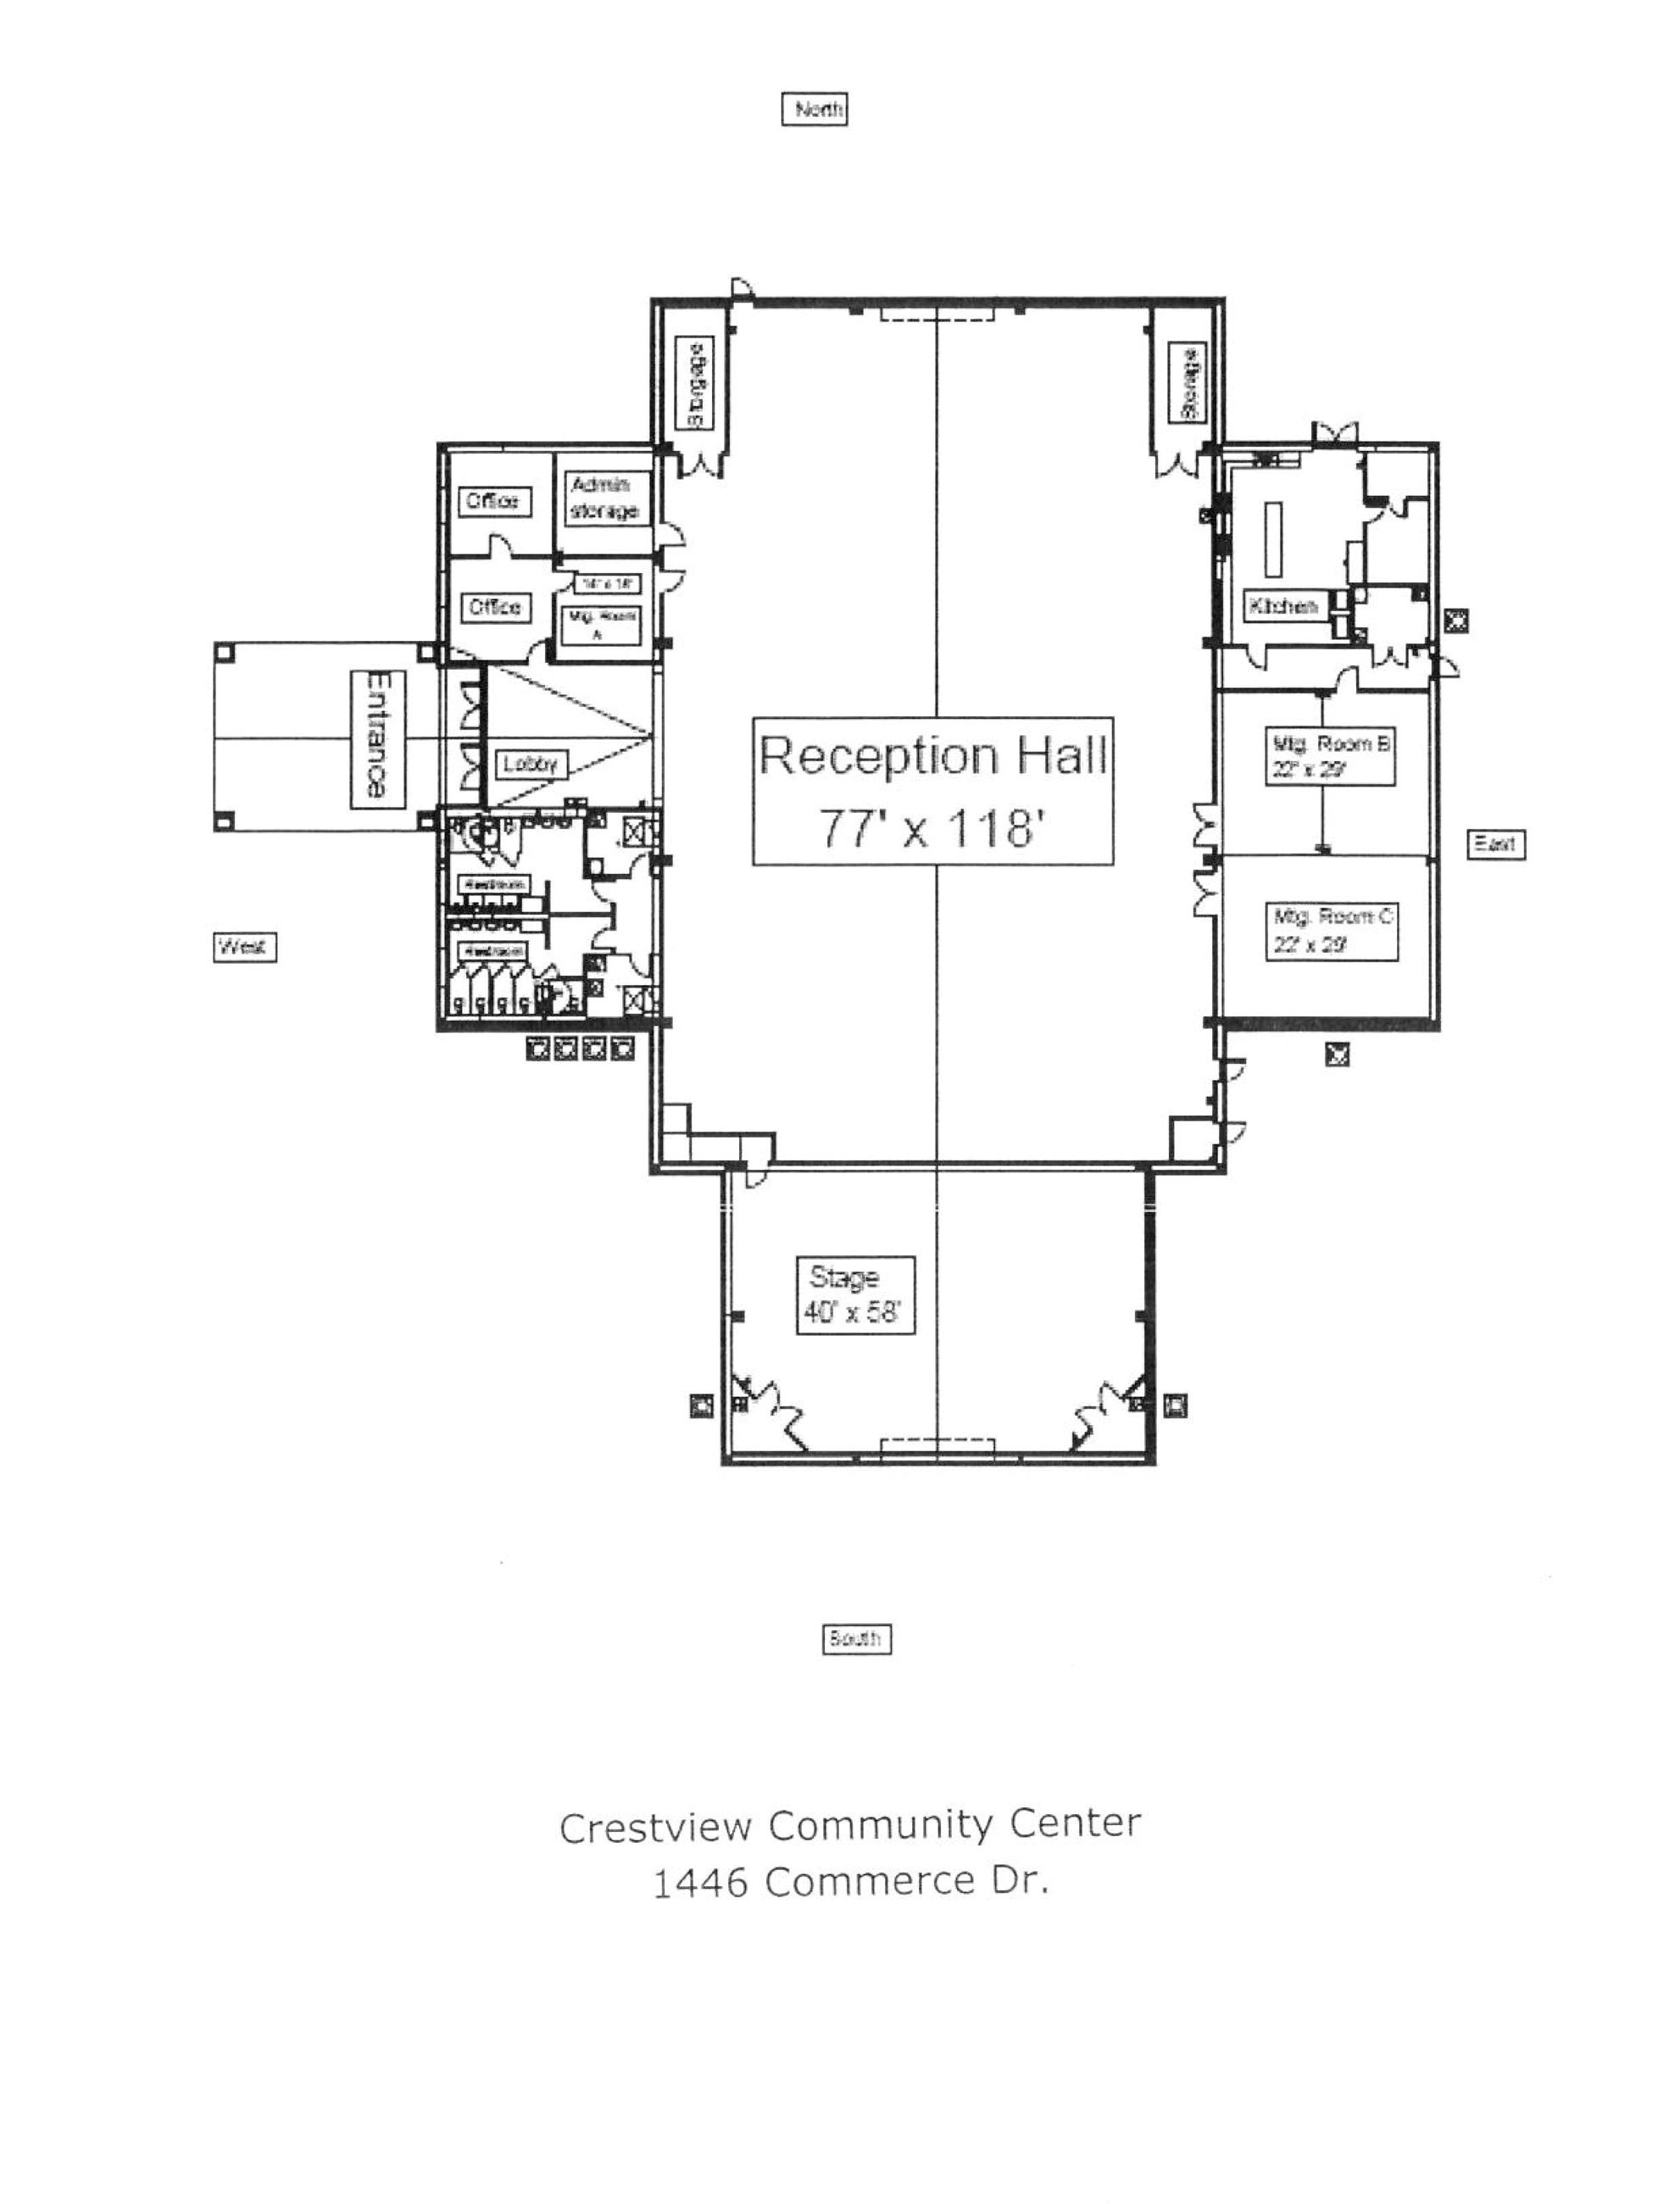 Community Center Map